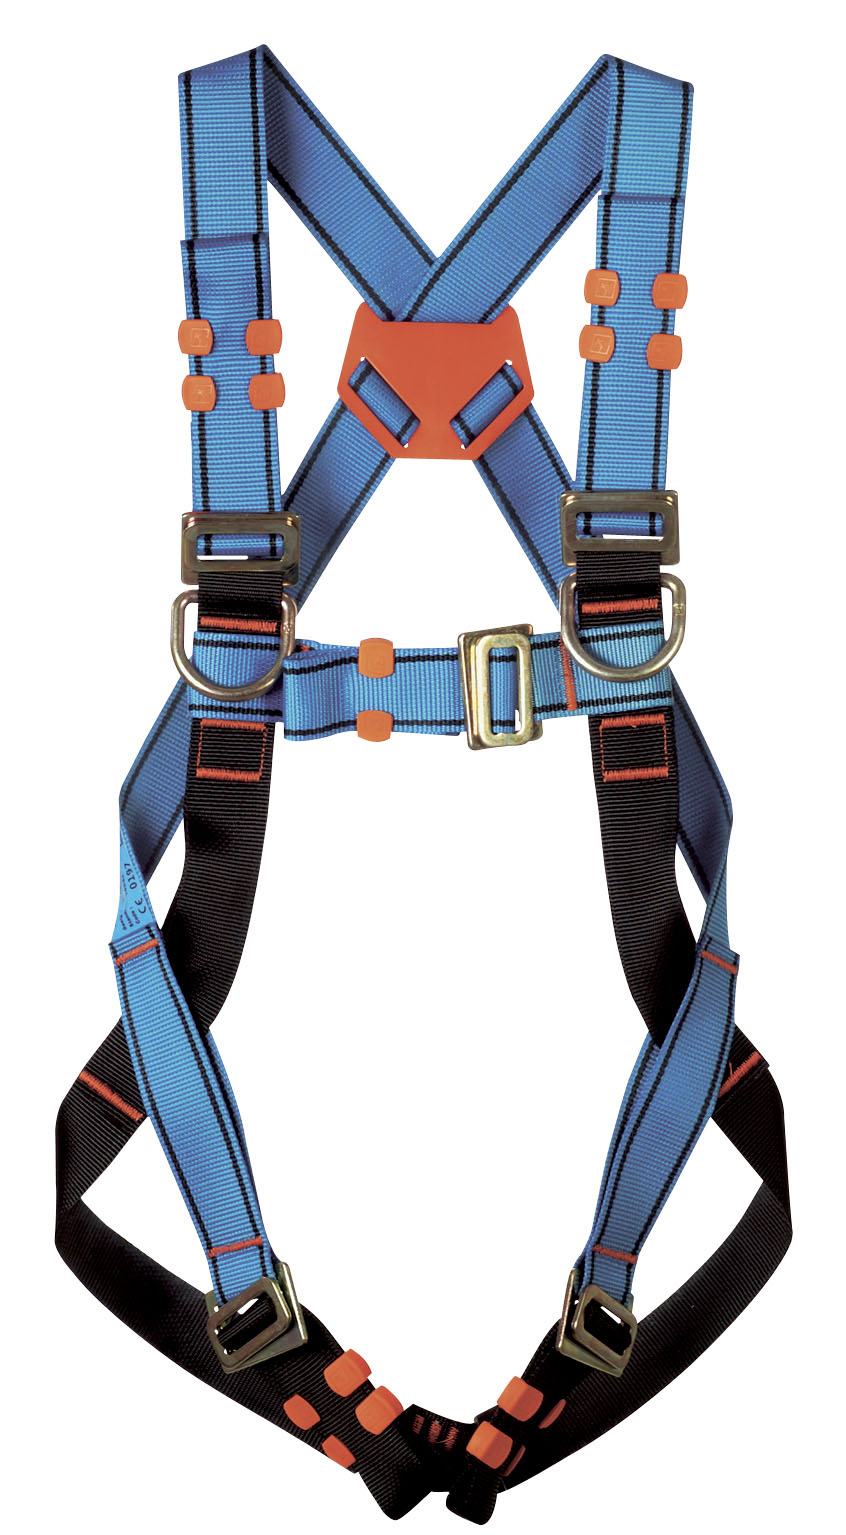 promatsecuriteharnais fall protection harness fire safety